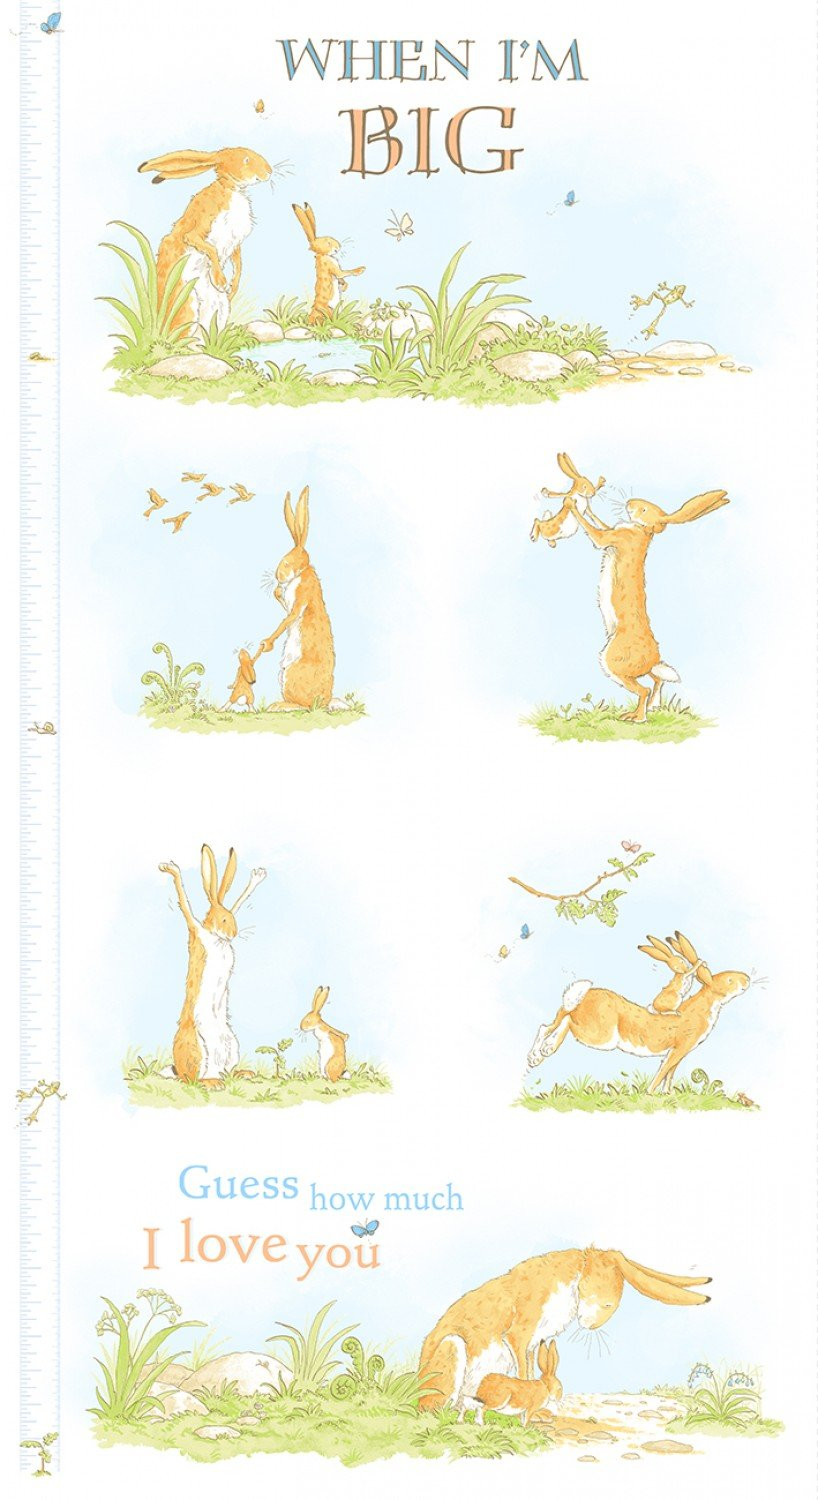 When I Am Big Children's Growth Chart Cotton Panel 24 x 44 Inches